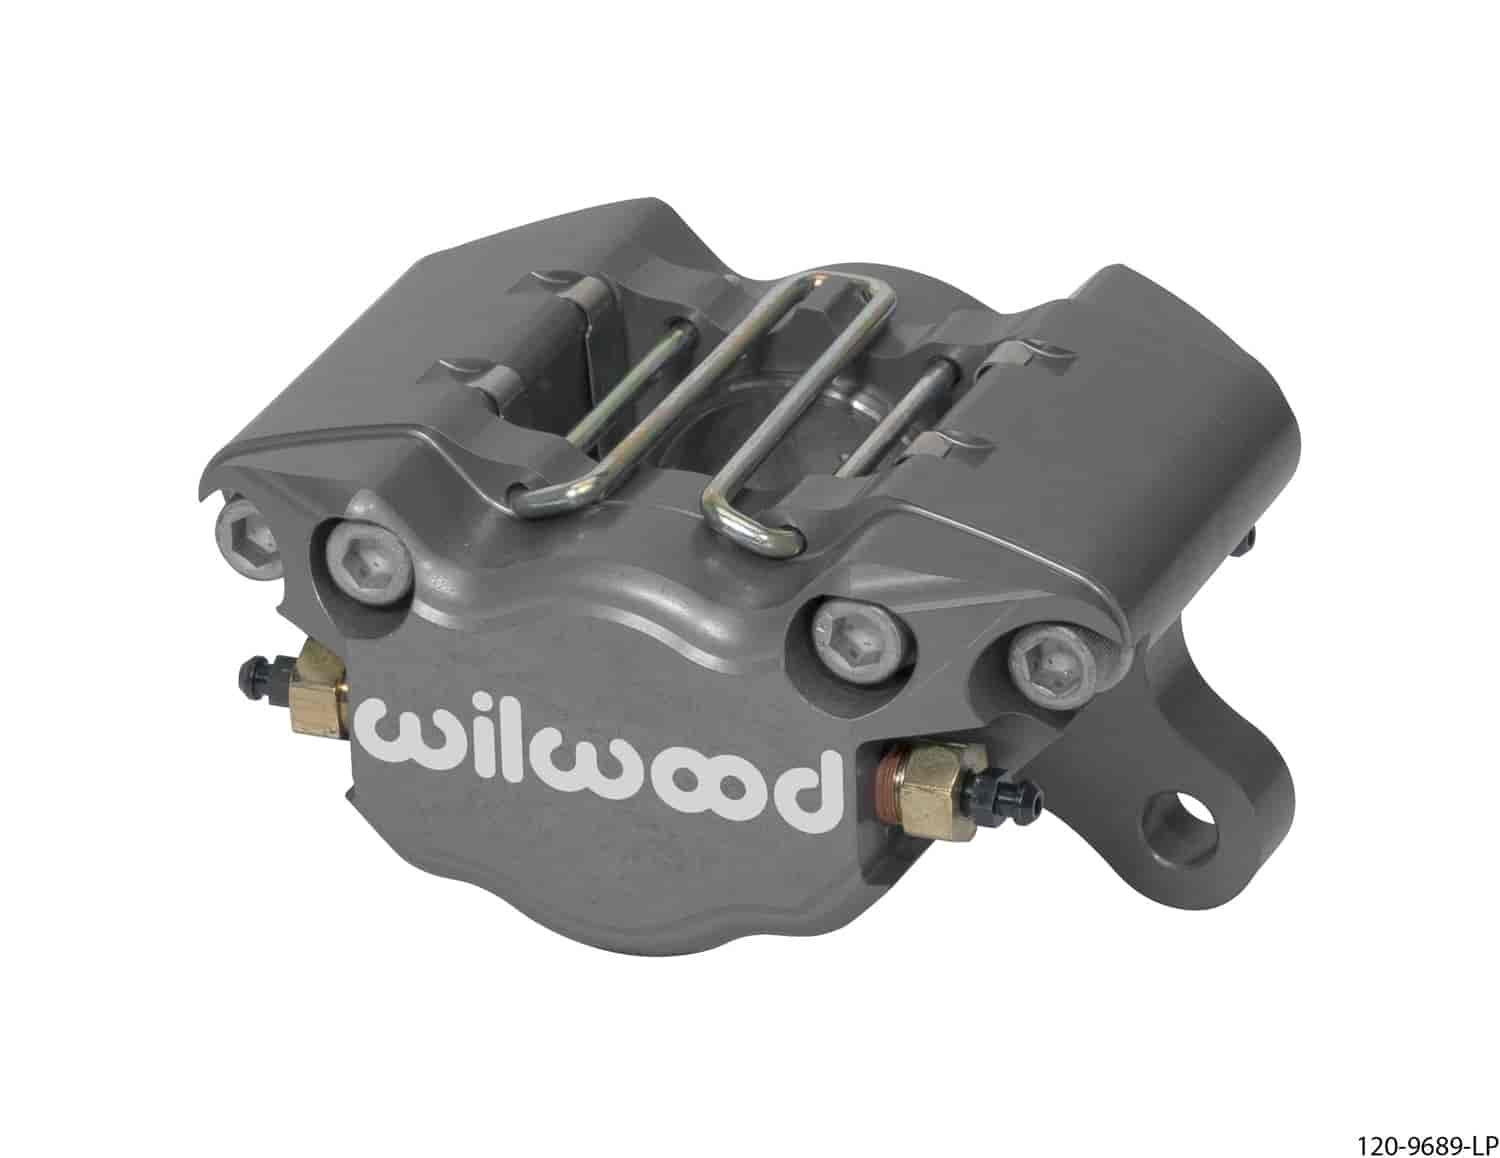 Wilwood 120-9689-LP - Wilwood Dynapro Single Billet Calipers